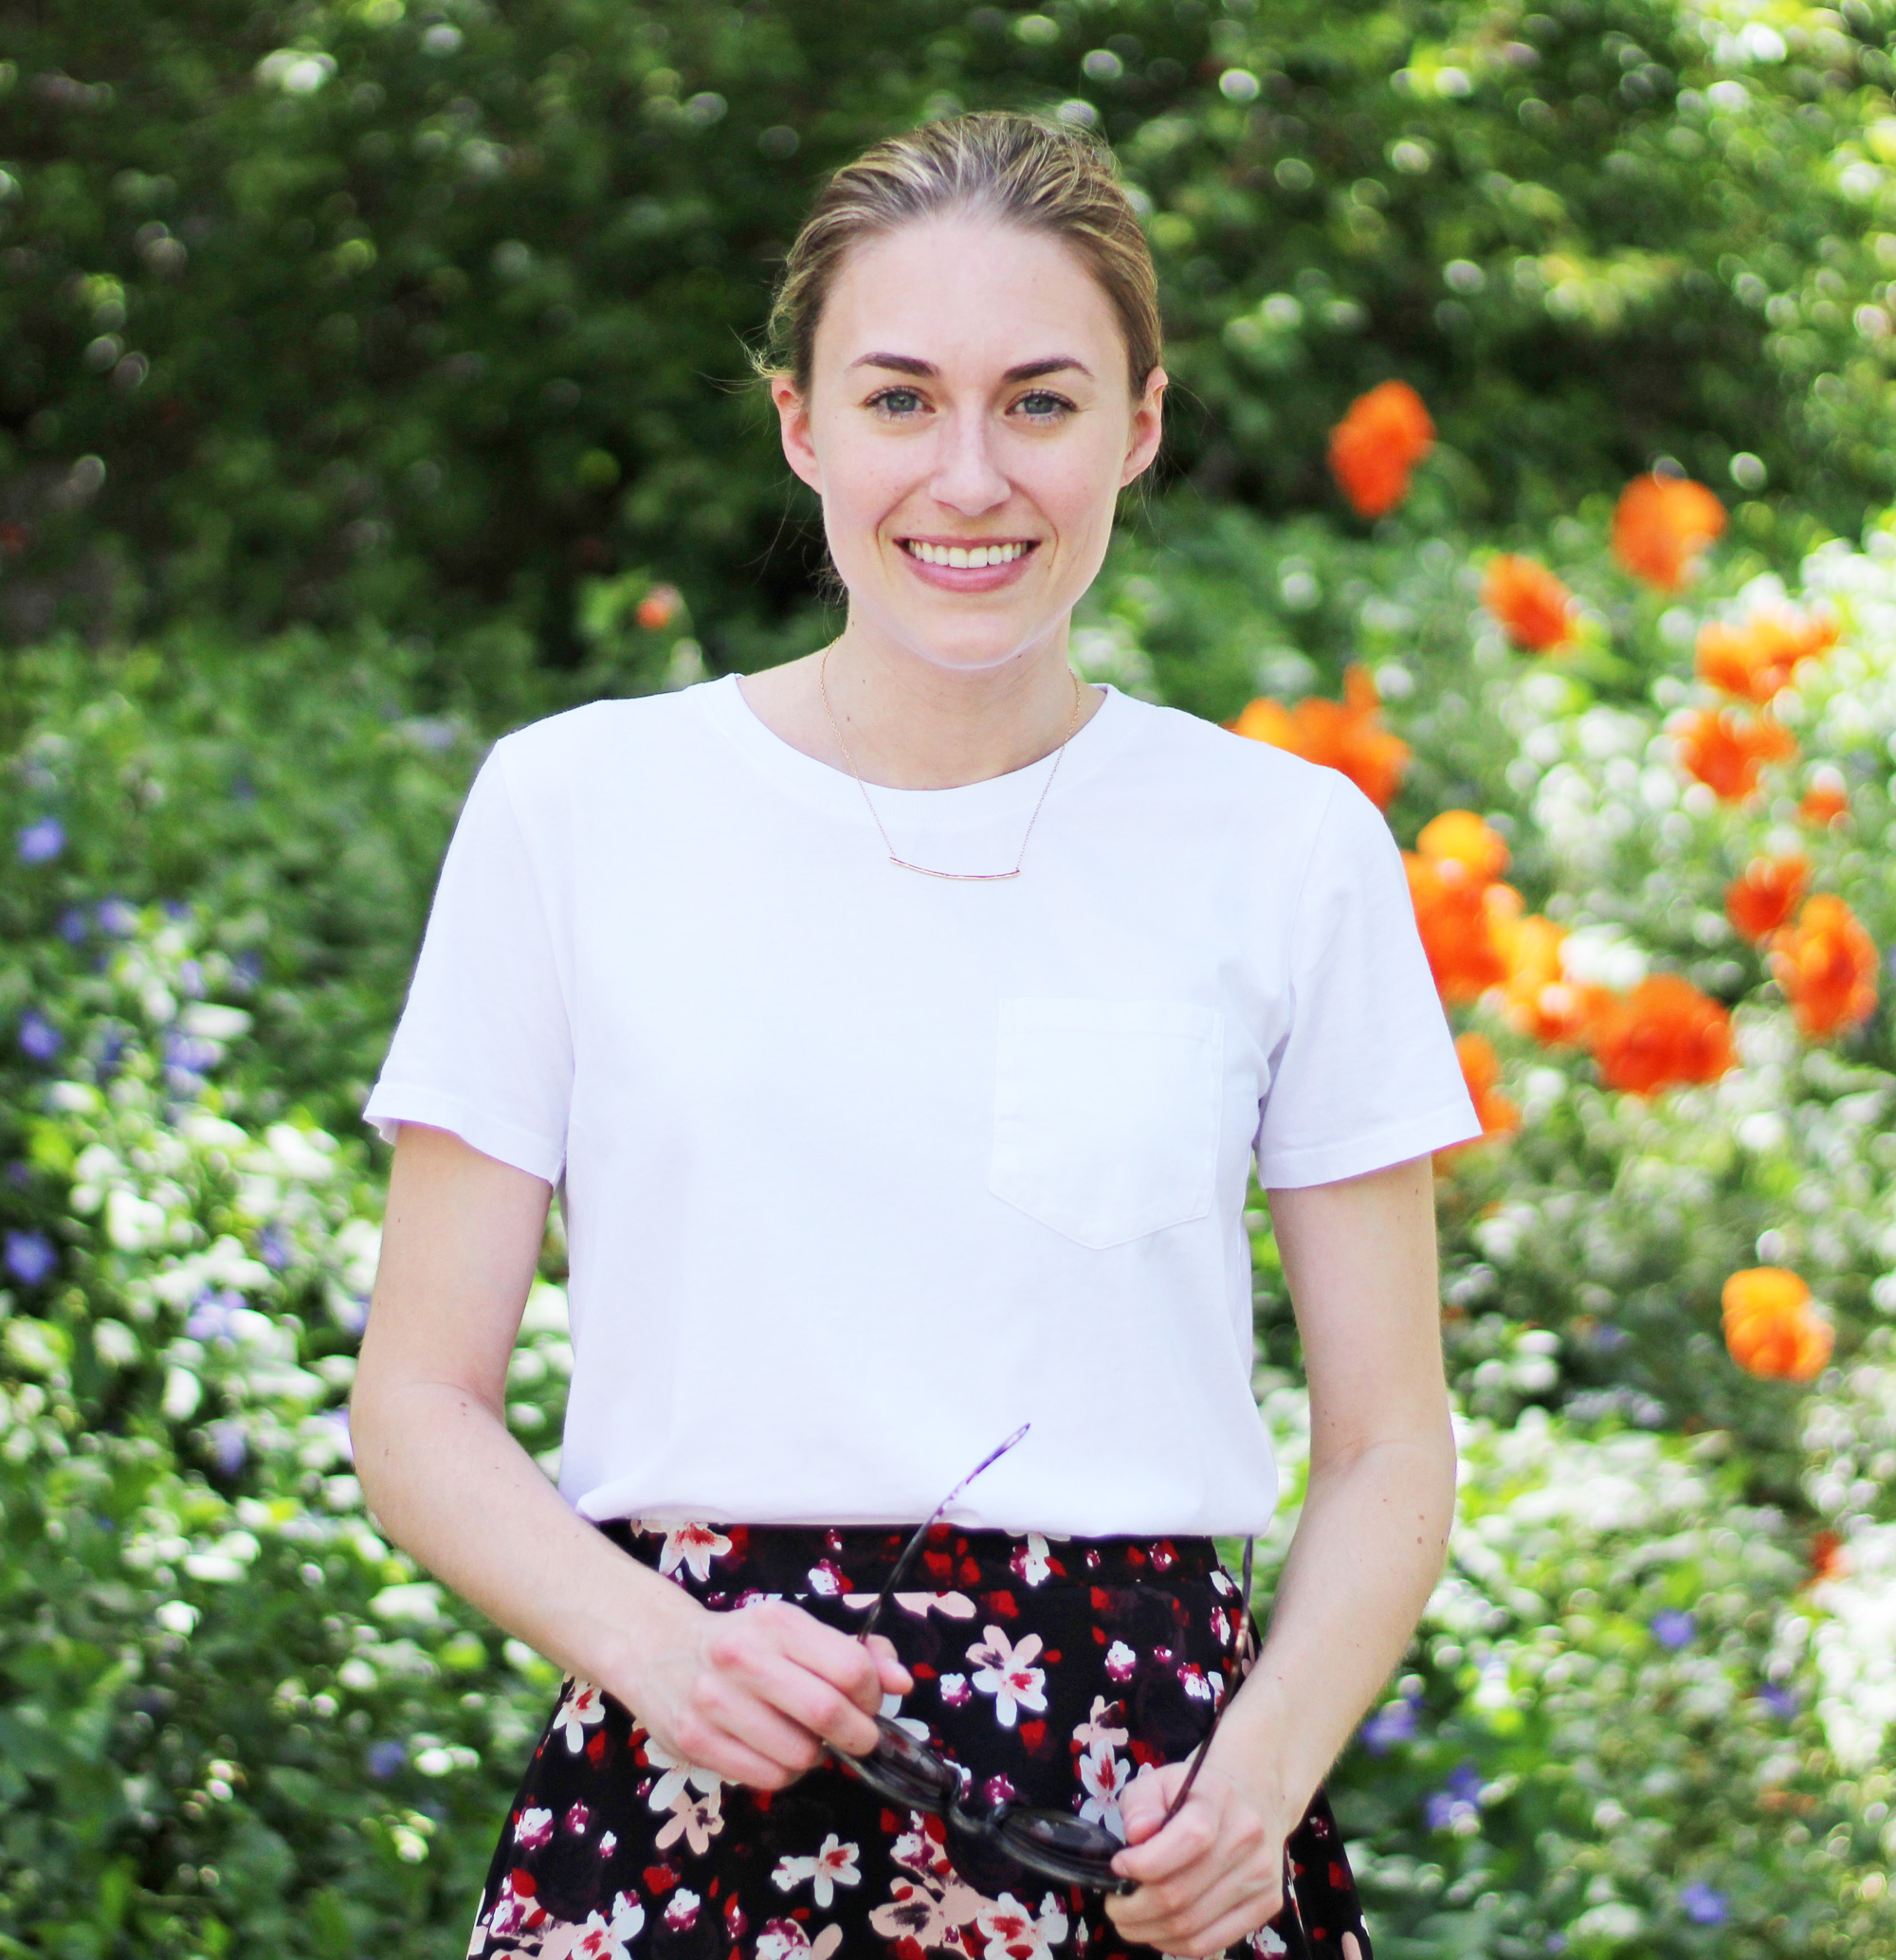 Spring outfit: Gorjana necklace, Everlane white tee, dark floral skirt — Cotton Cashmere Cat Hair